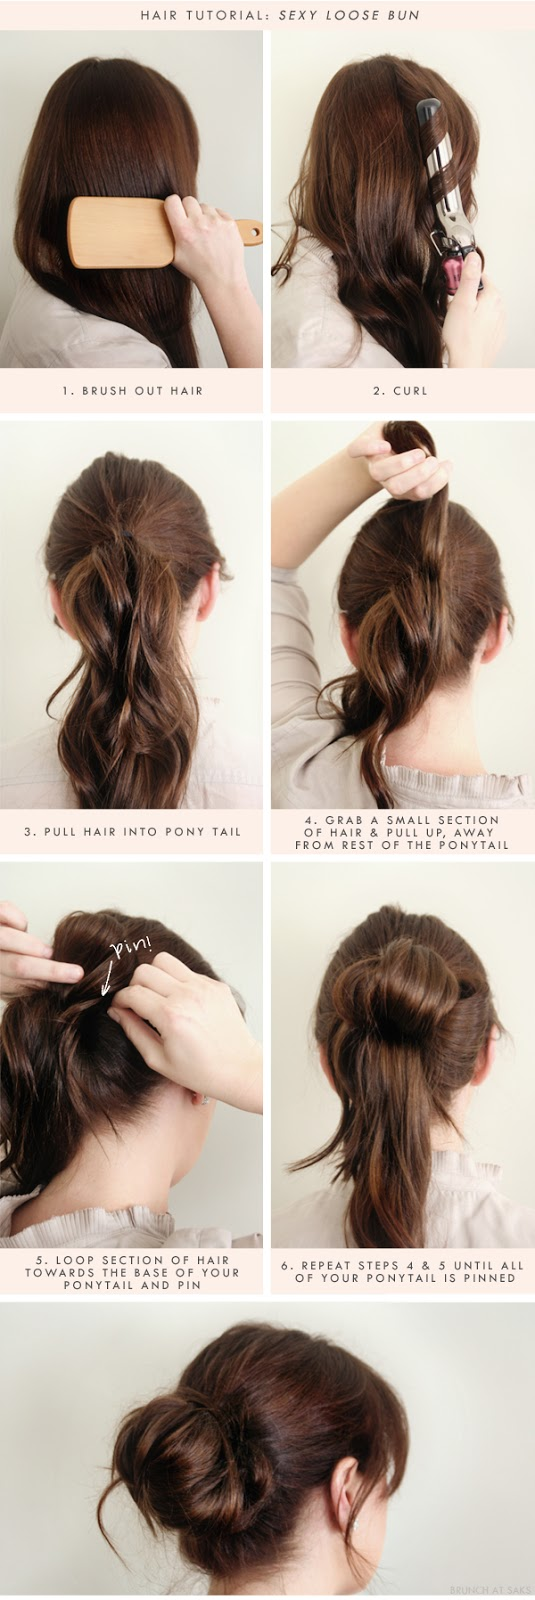 Sensational Top 25 Messy Hair Bun Tutorials Perfect For Those Lazy Mornings Hairstyle Inspiration Daily Dogsangcom